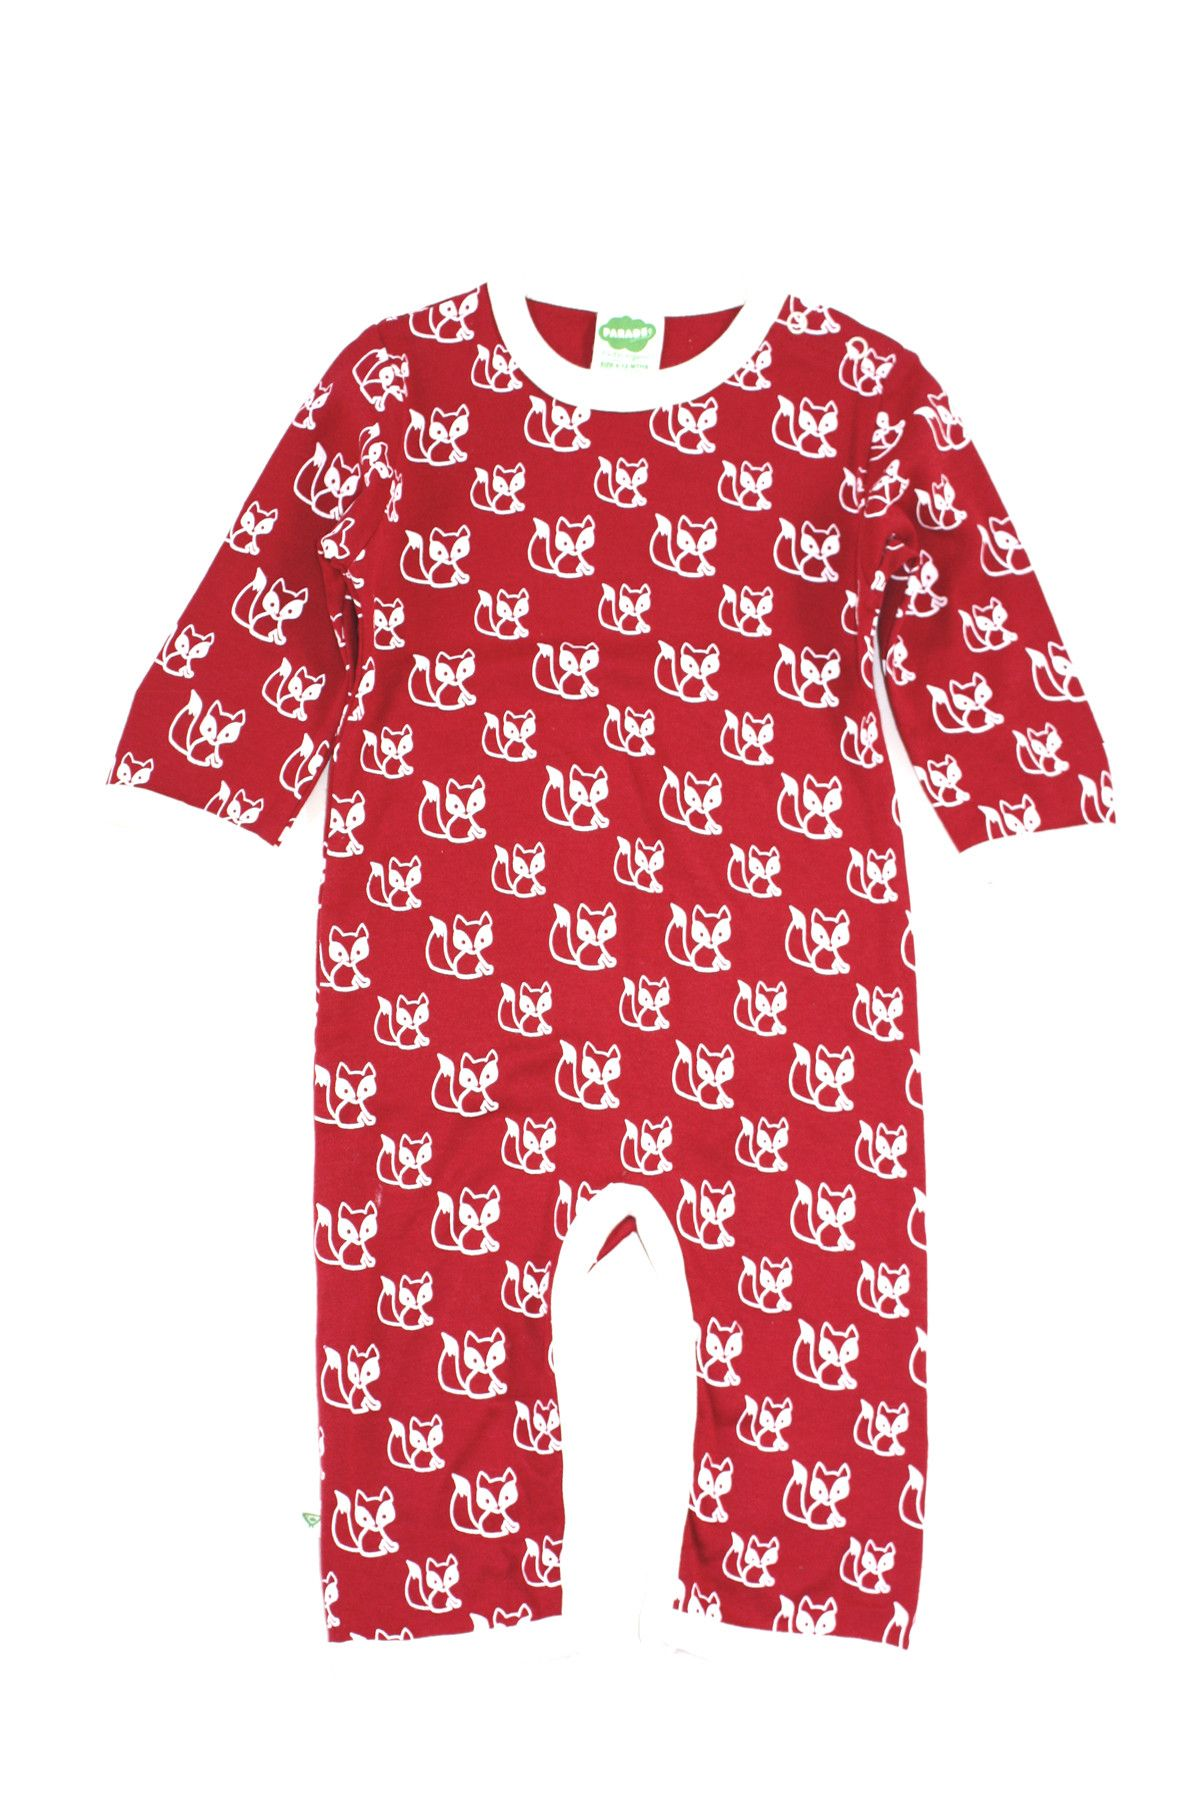 Parade Organic baby clothes Fox print Romper $28 Forest friends